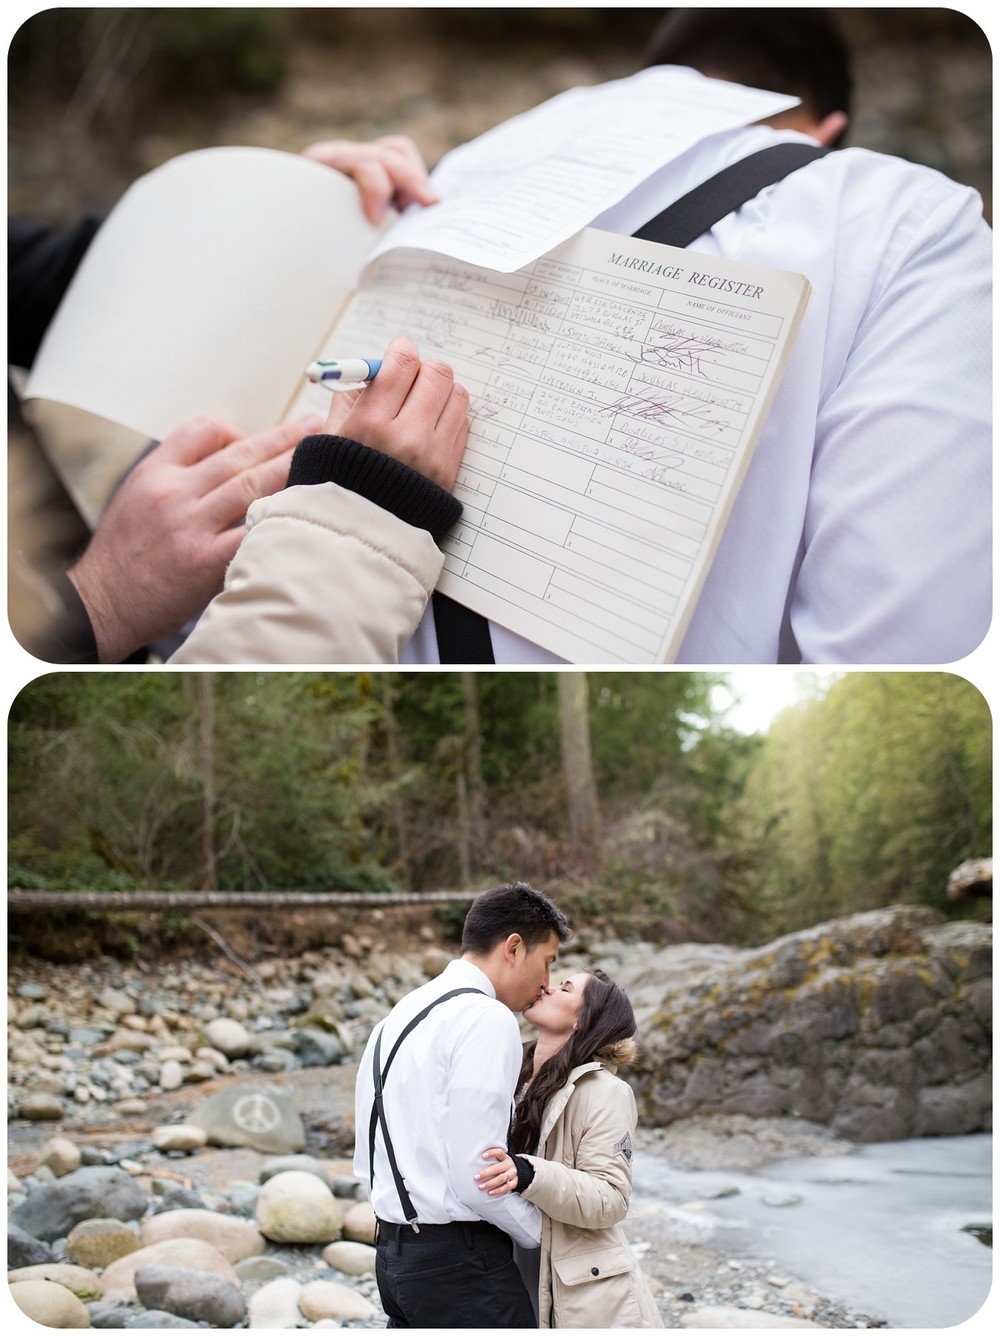 signing wedding register, outdoor riverside elopement, englishman river falls weddings, englishman river falls wedding photographer